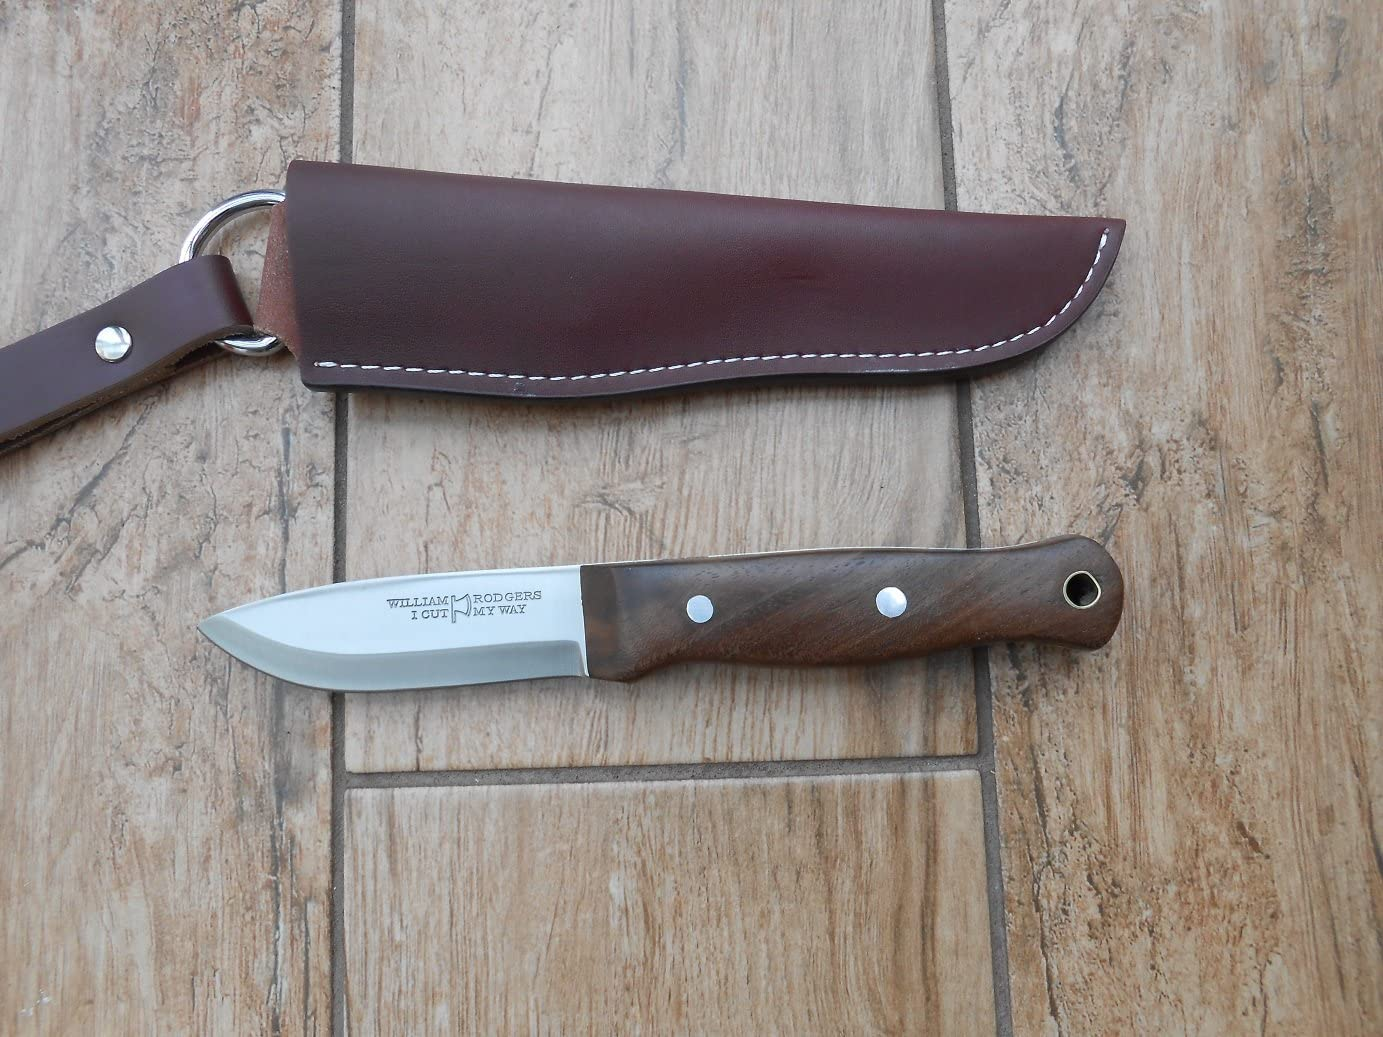 Custom made by a London maker Sale Hand Crafted Bushcraft Knife – 01 Carbon Tool Steel Scandi Style Blade Walnut Handle Bargain